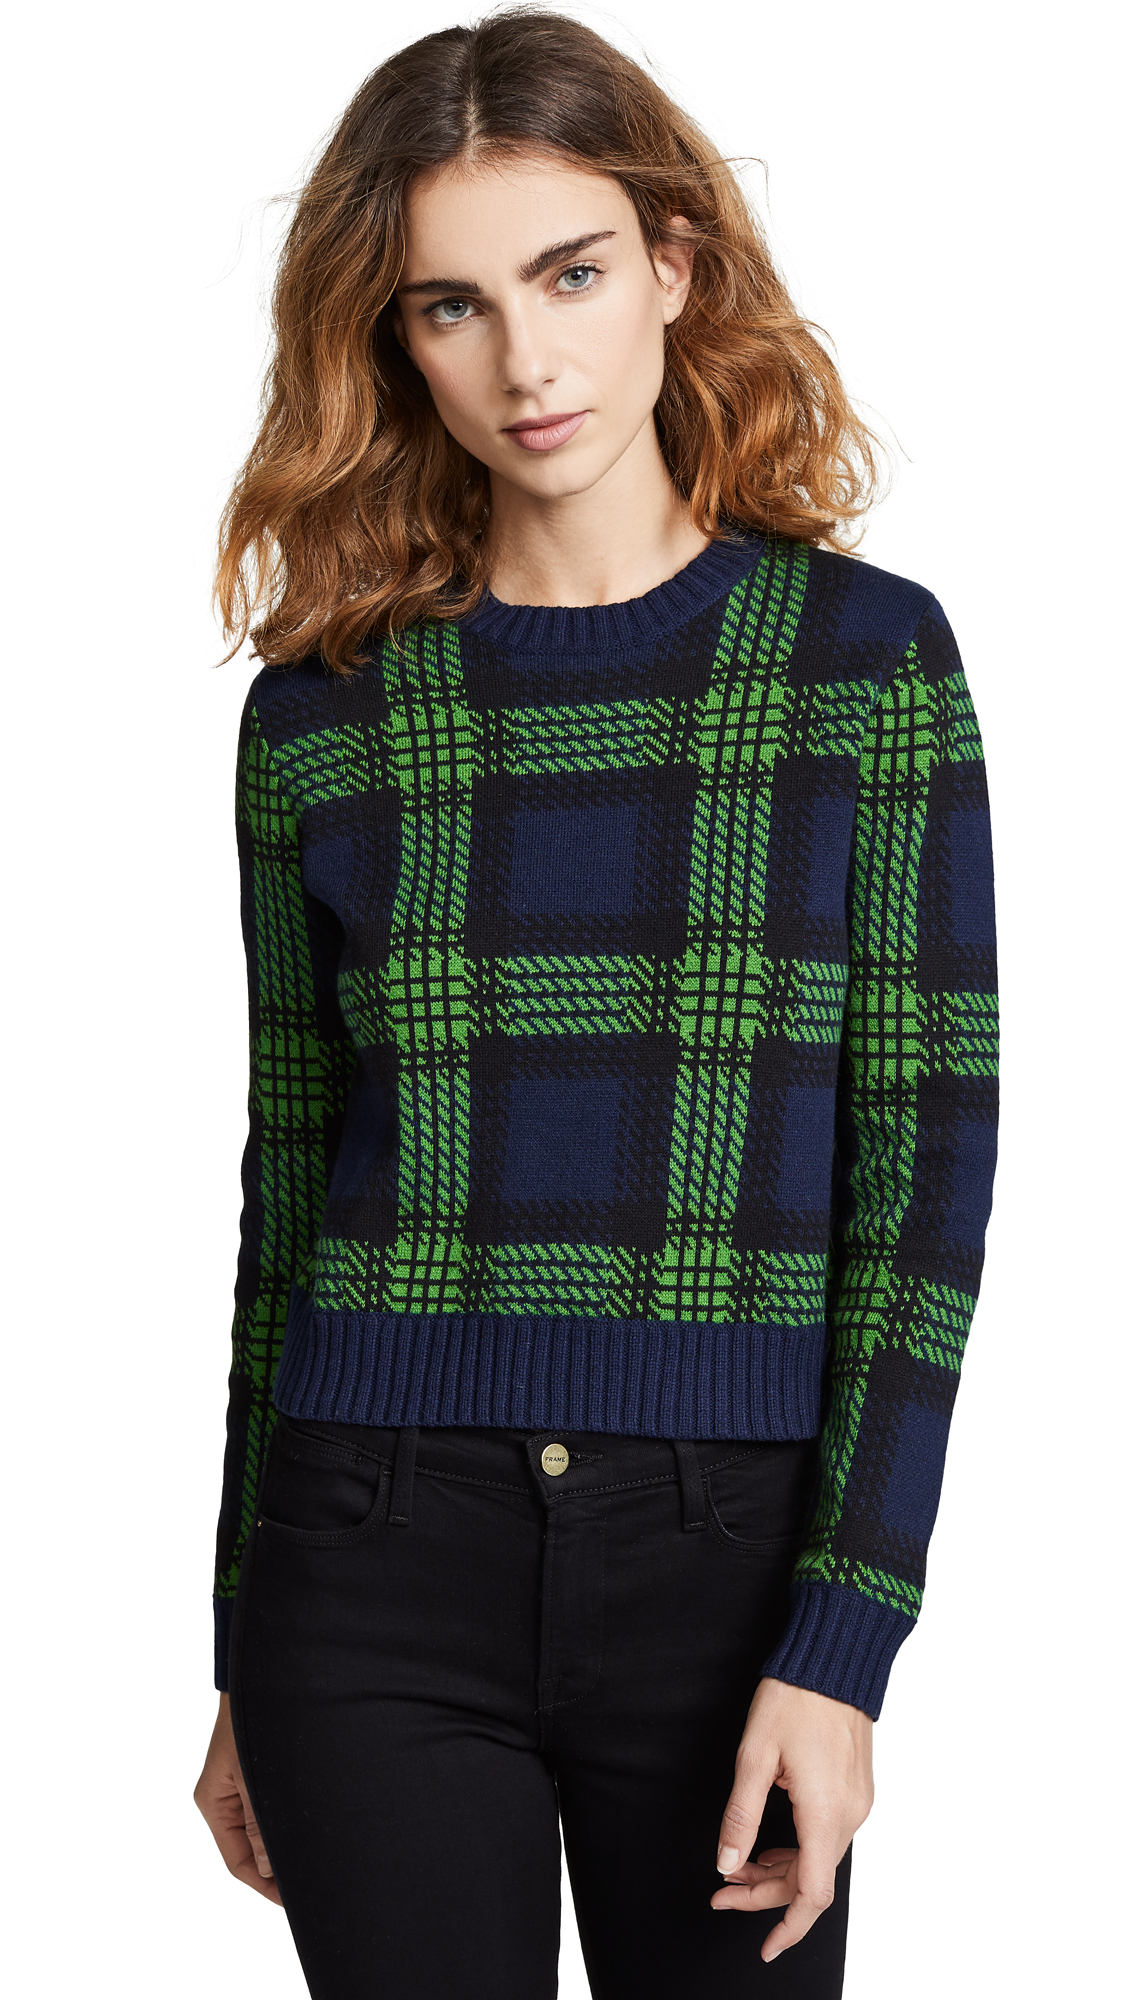 BOP BASICS Tartan Plaid Crew Neck Sweater in Navy/Green